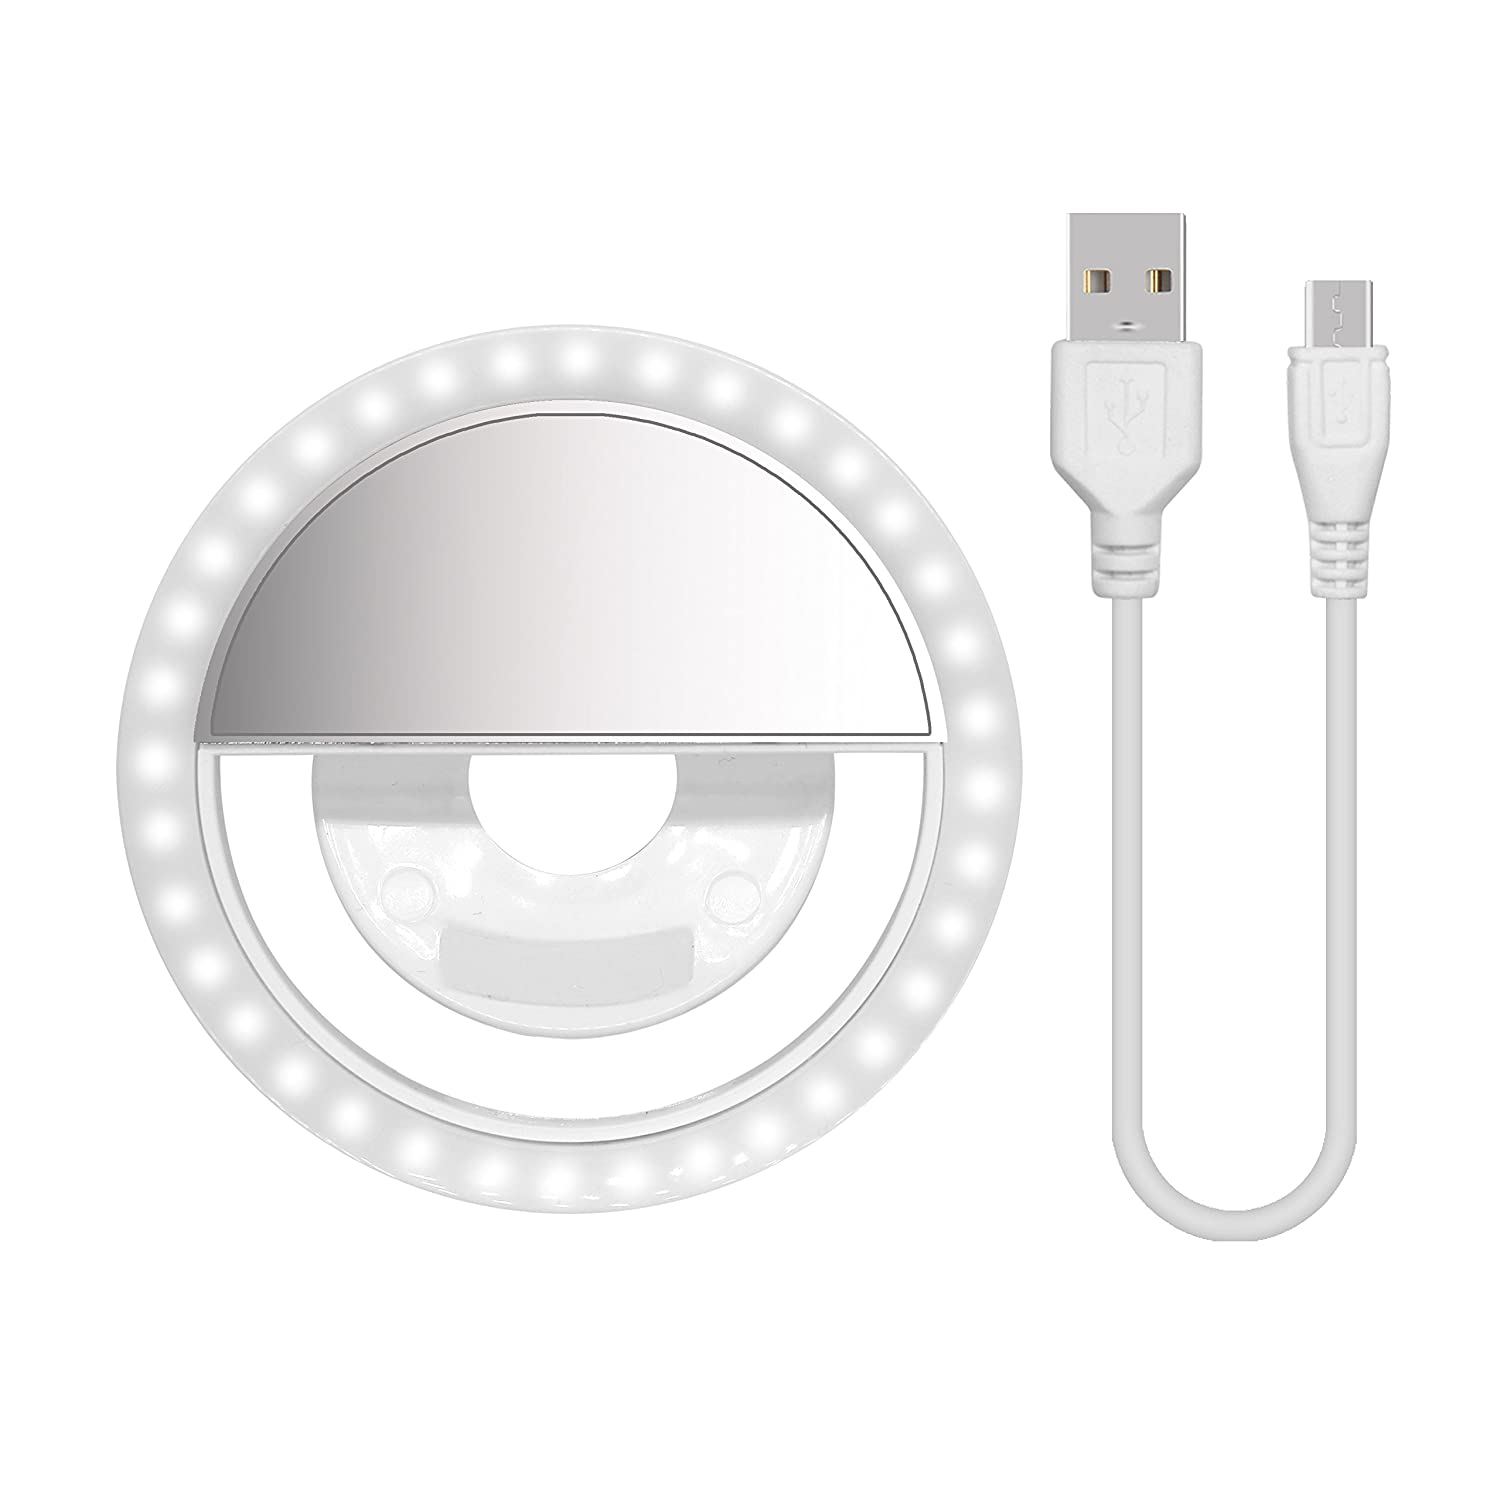 Selfie Ring Light, 2E·YOU Rechargeable Battery with 36 LED Outdoor Webcast Indispensable Supplementary Light For Most Smart Phones, Ipad, Brightness Levels Adjustable, White